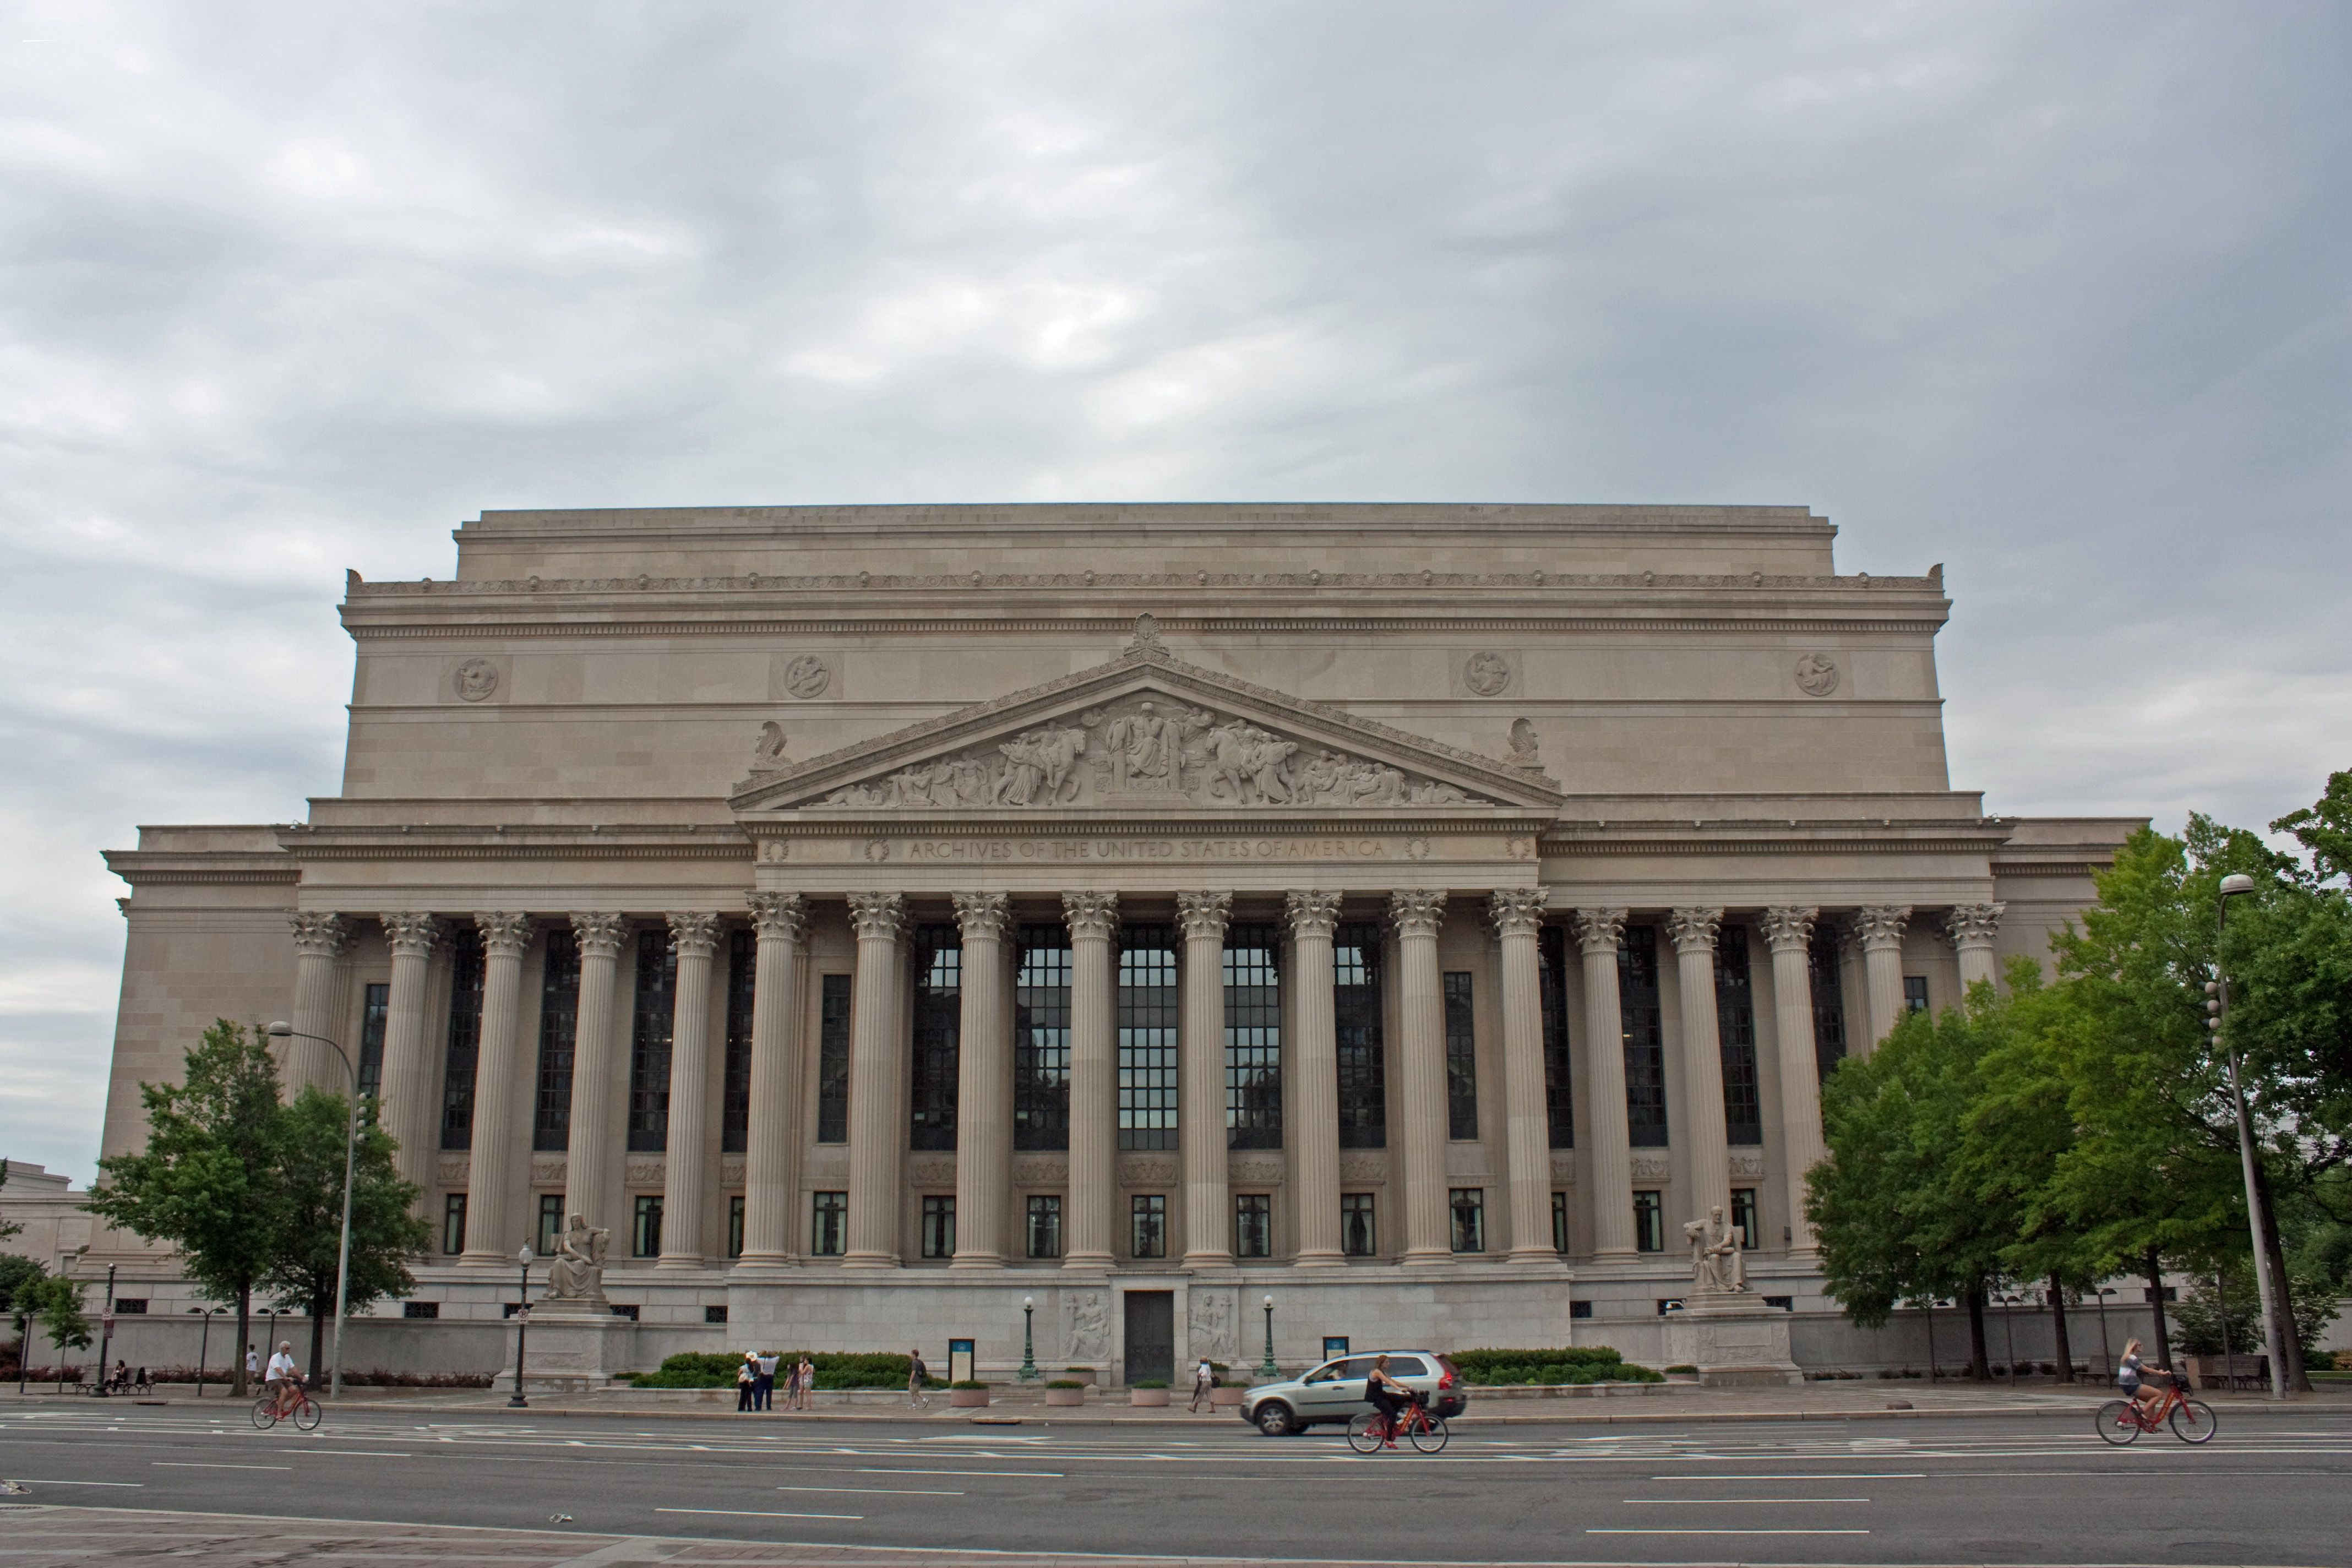 National Archives Building in Washington, D.C. View the ...